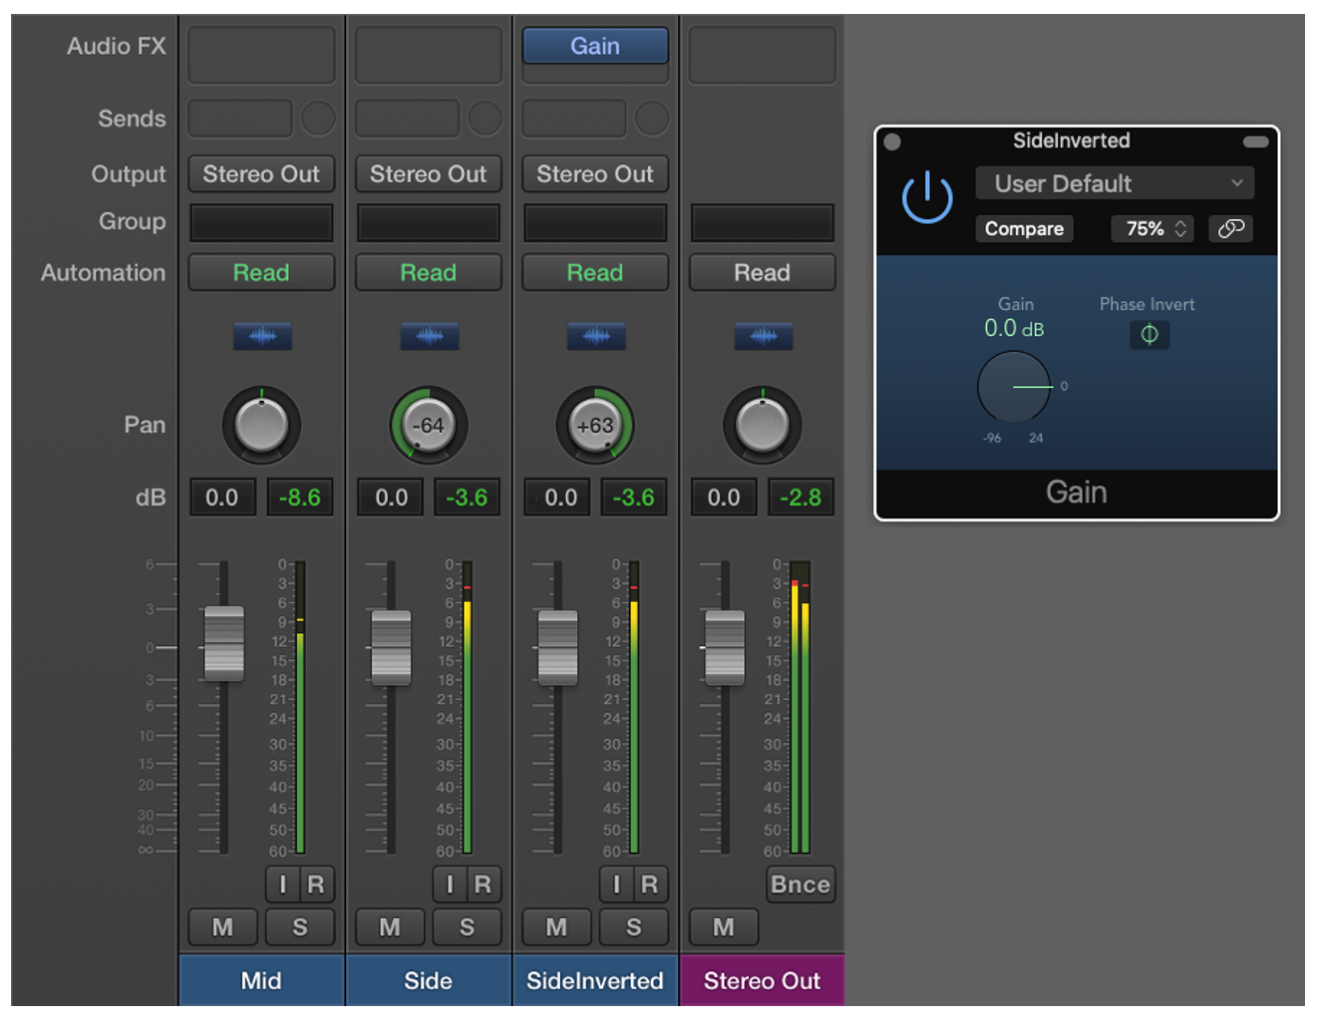 Figure 15.7. Mid-side decode method in Logic Pro. (Gain plug-in is used to achieve polarity inversion)